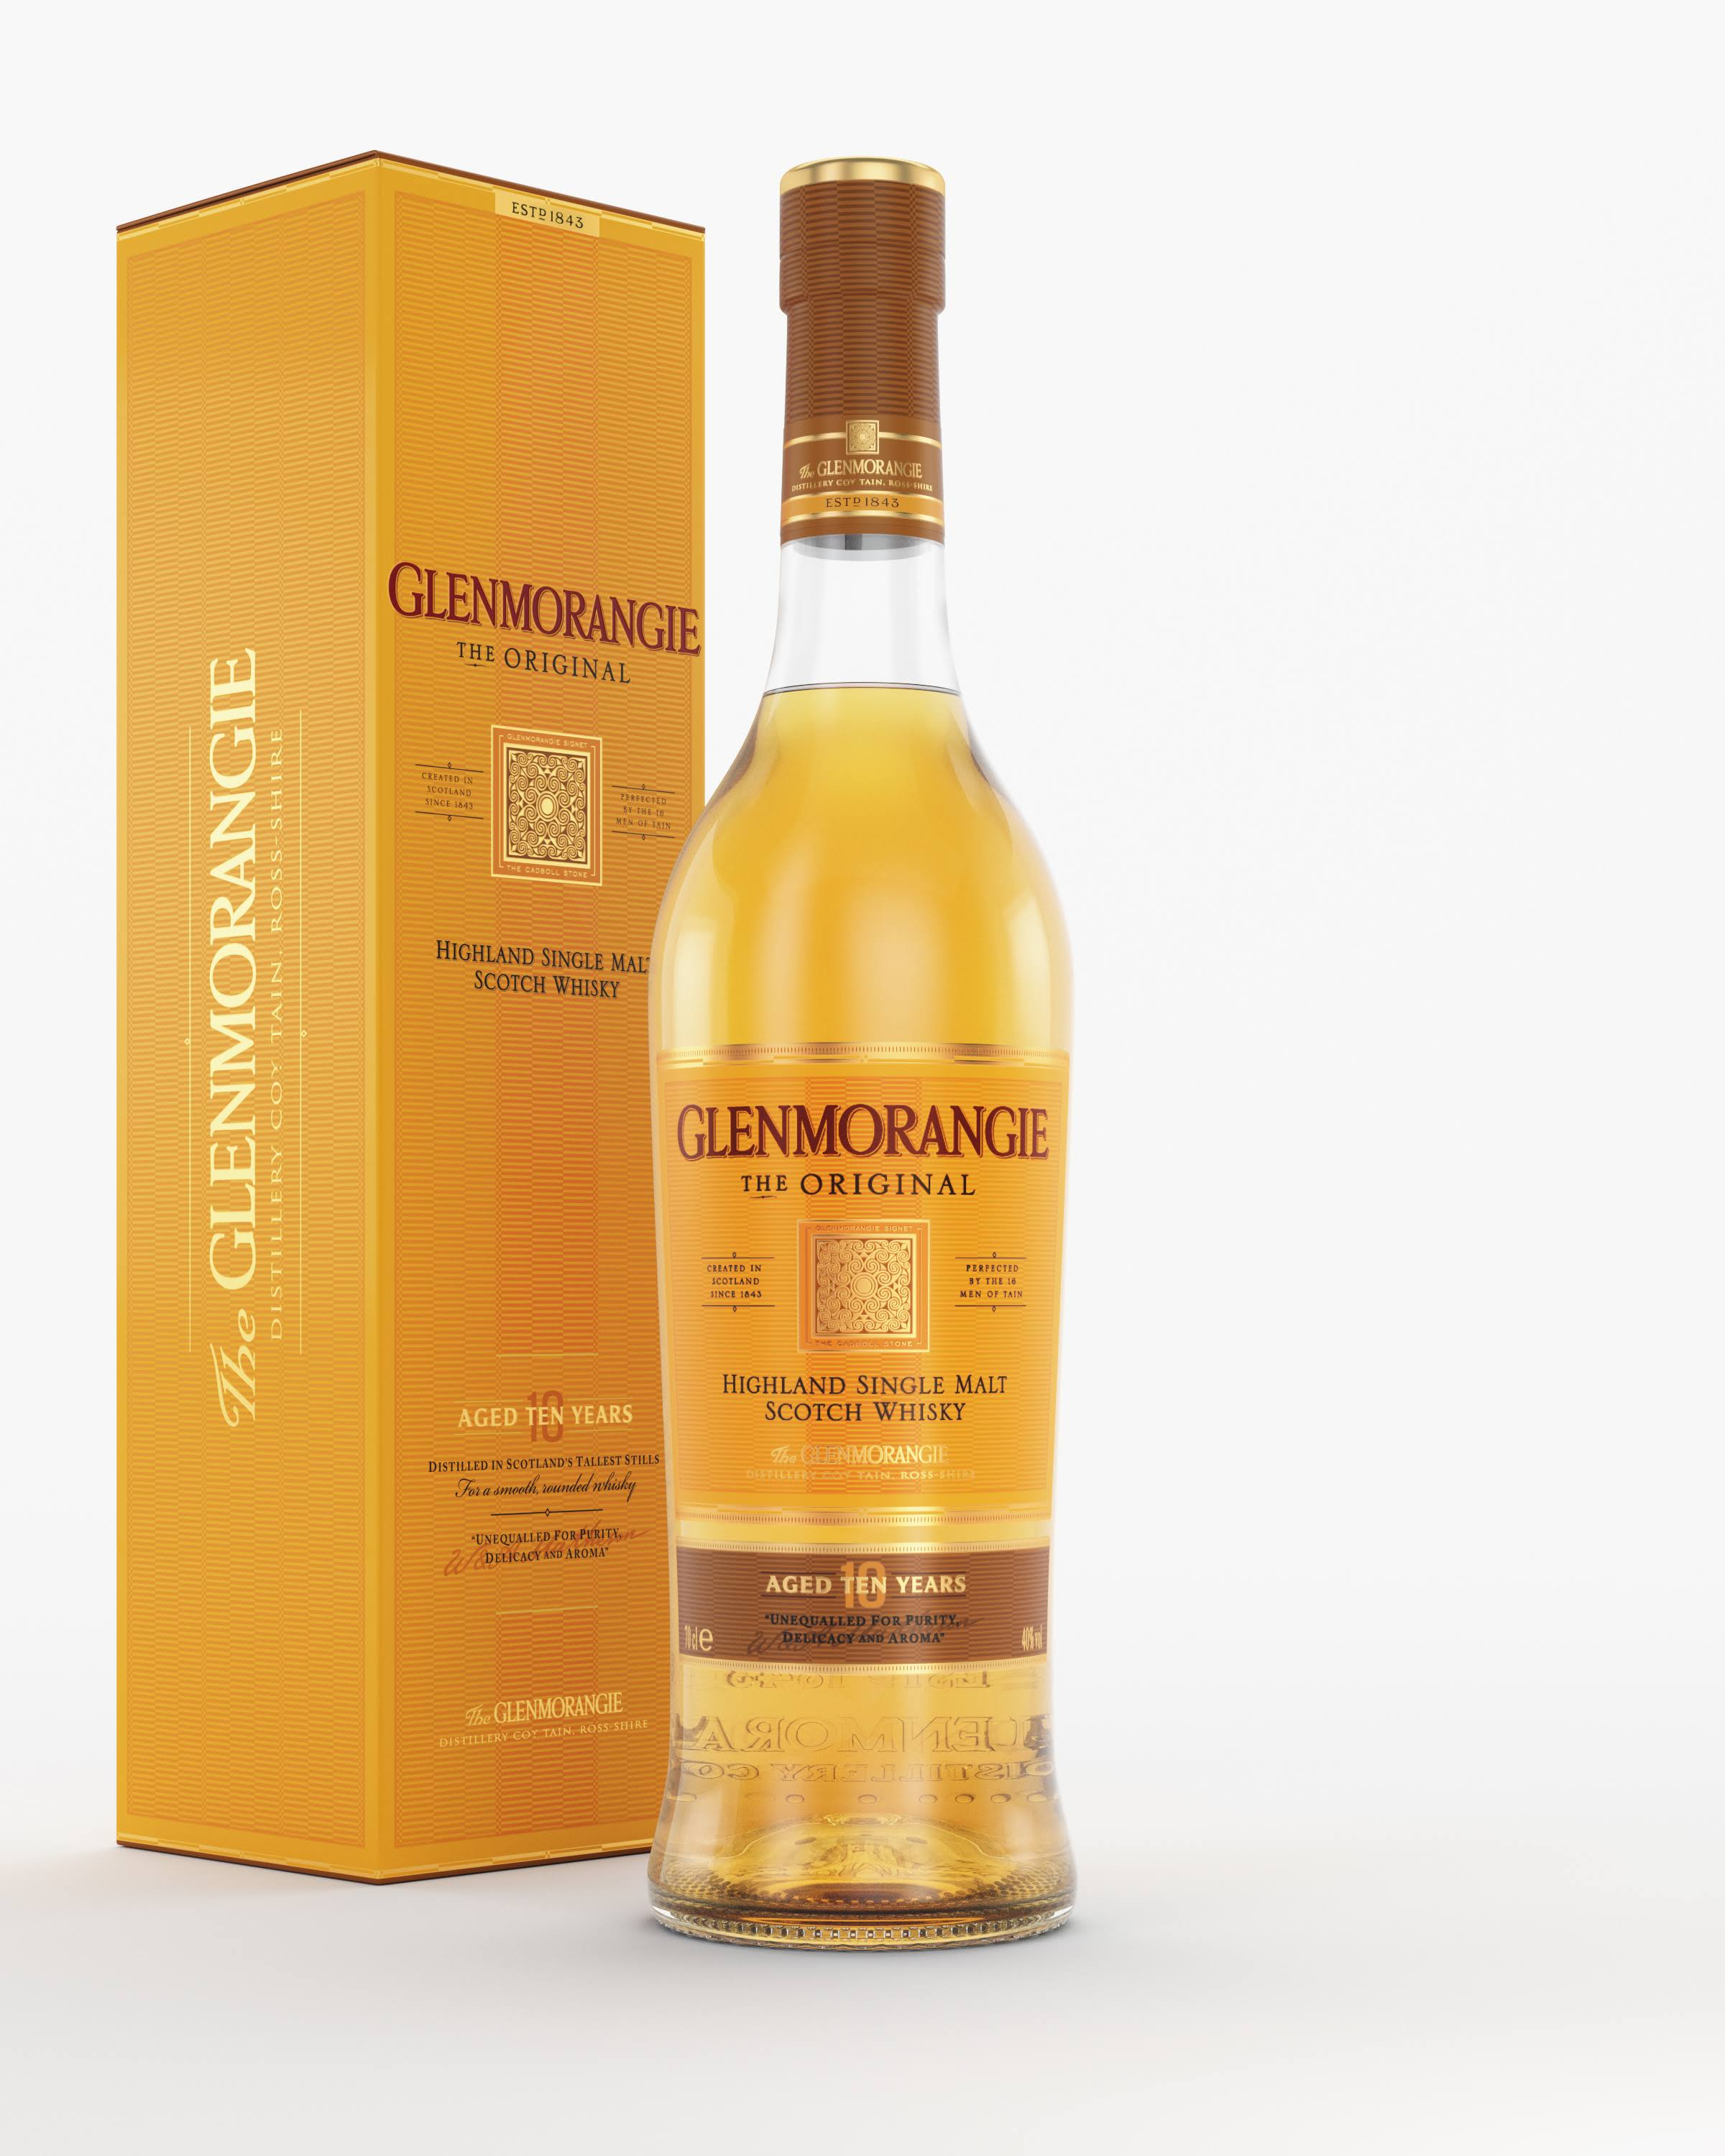 Glenmorangie The Original Single Malt Scotch Whisky - 700ml